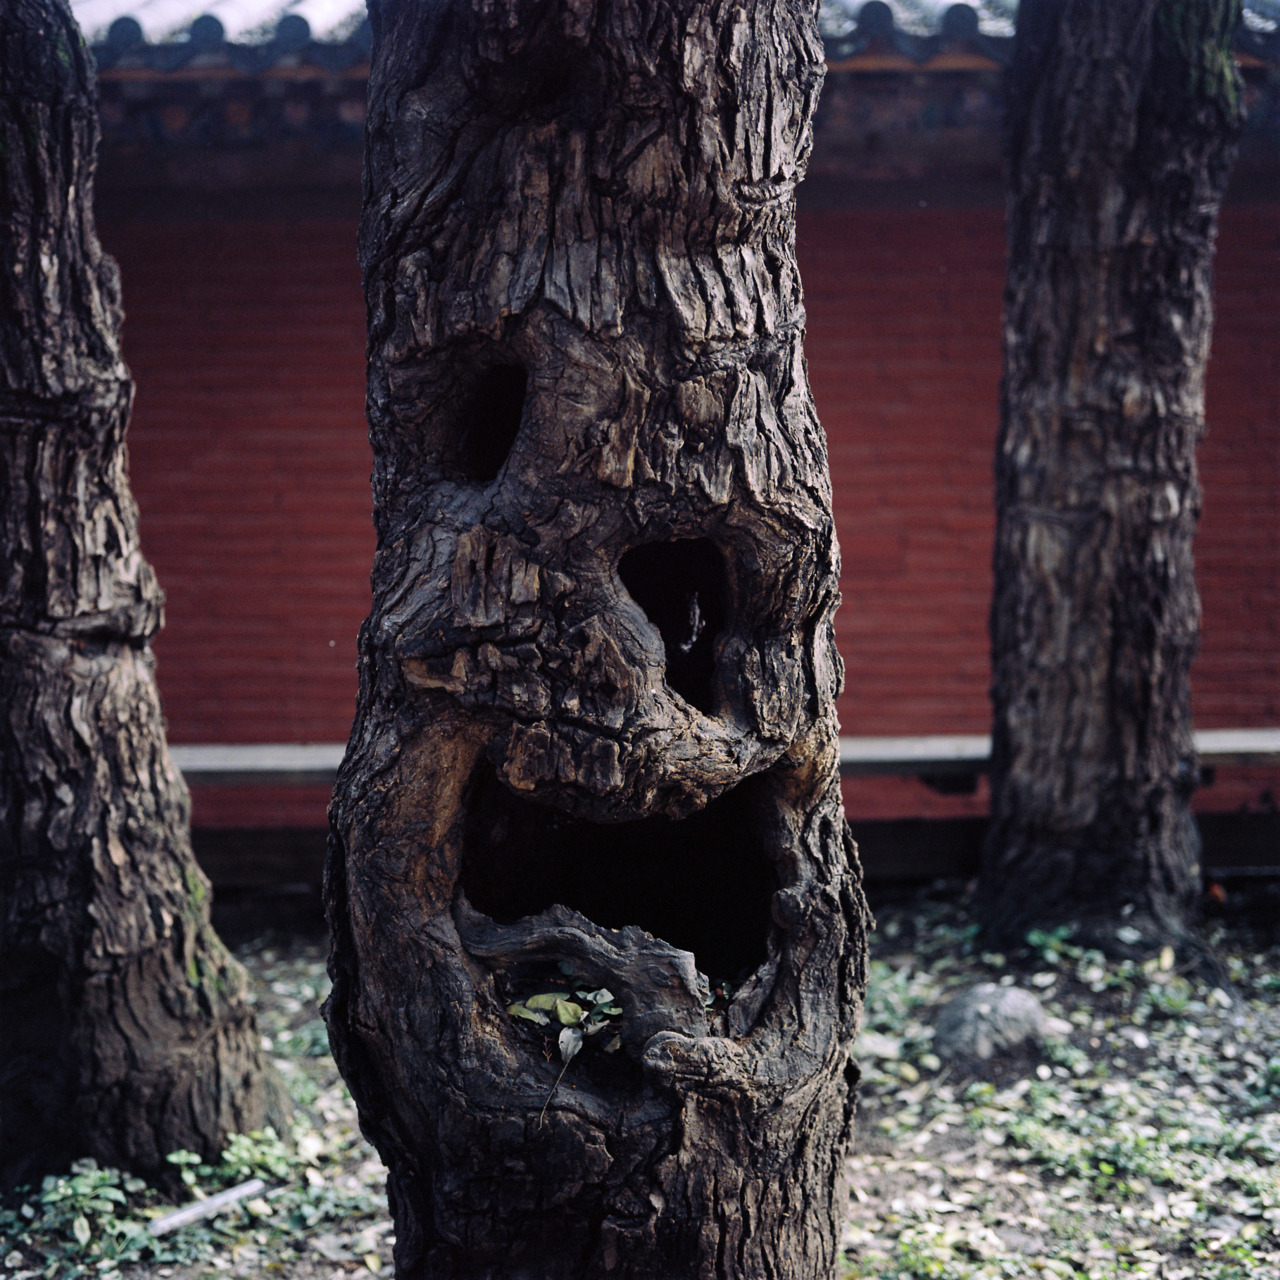 Just wrapped up the Shigeto tour and if I stop procrastinating will have a video up shortly….in the meantime here is a photo of my favorite tree at the Shaolin Temple, shot while on tour with the Lionheart Brothers.